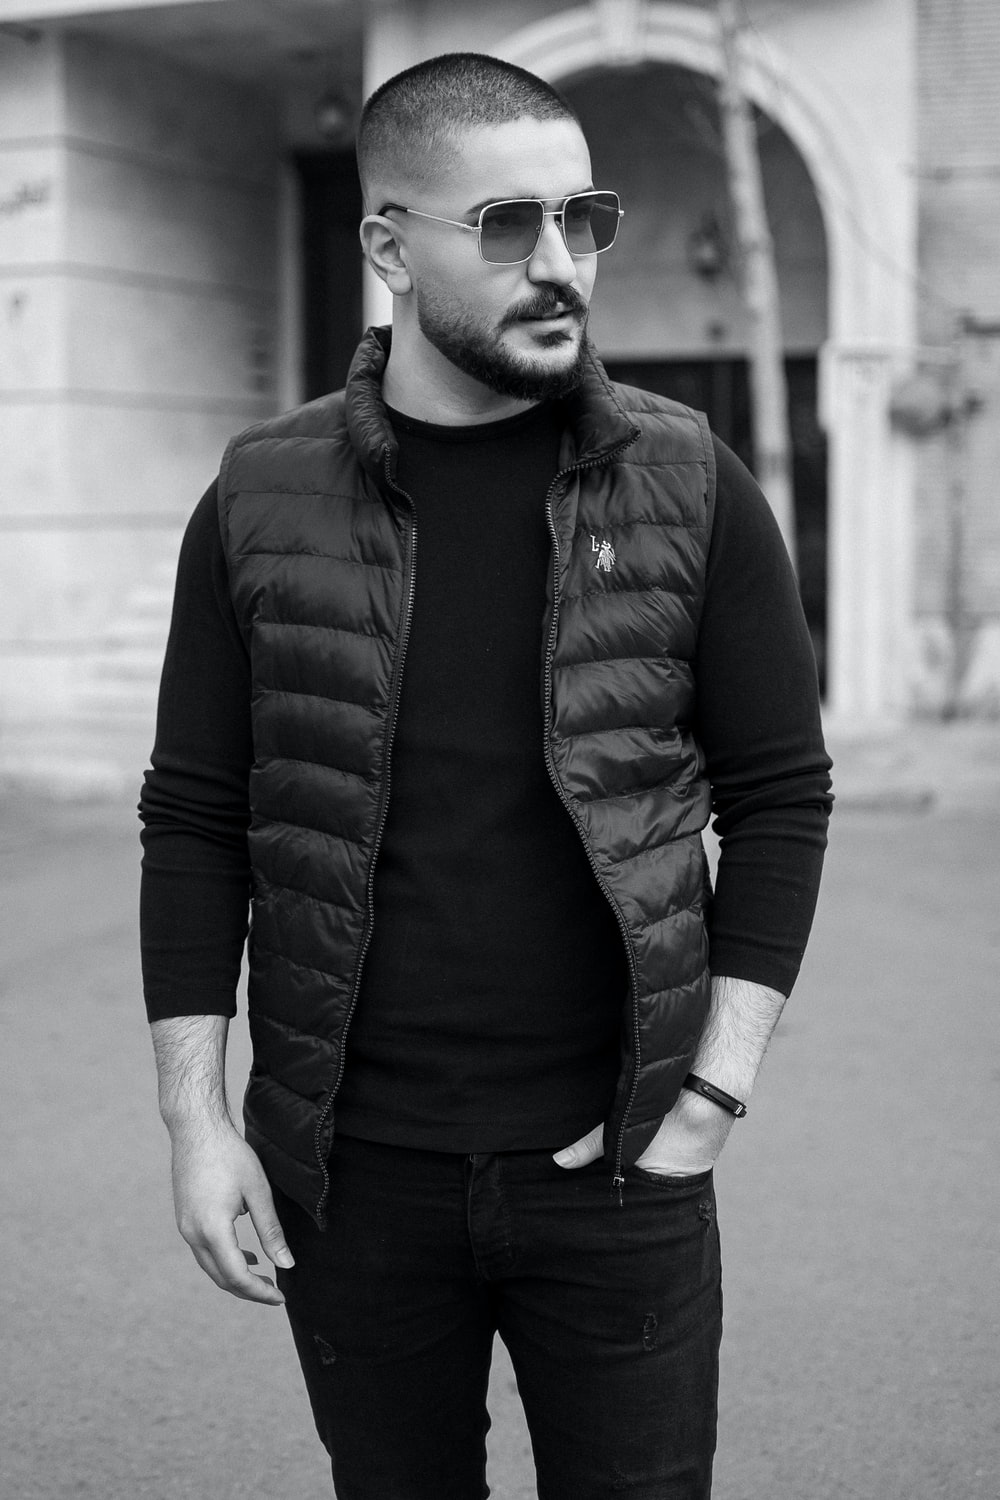 man in black jacket and black pants standing on sidewalk in grayscale photography